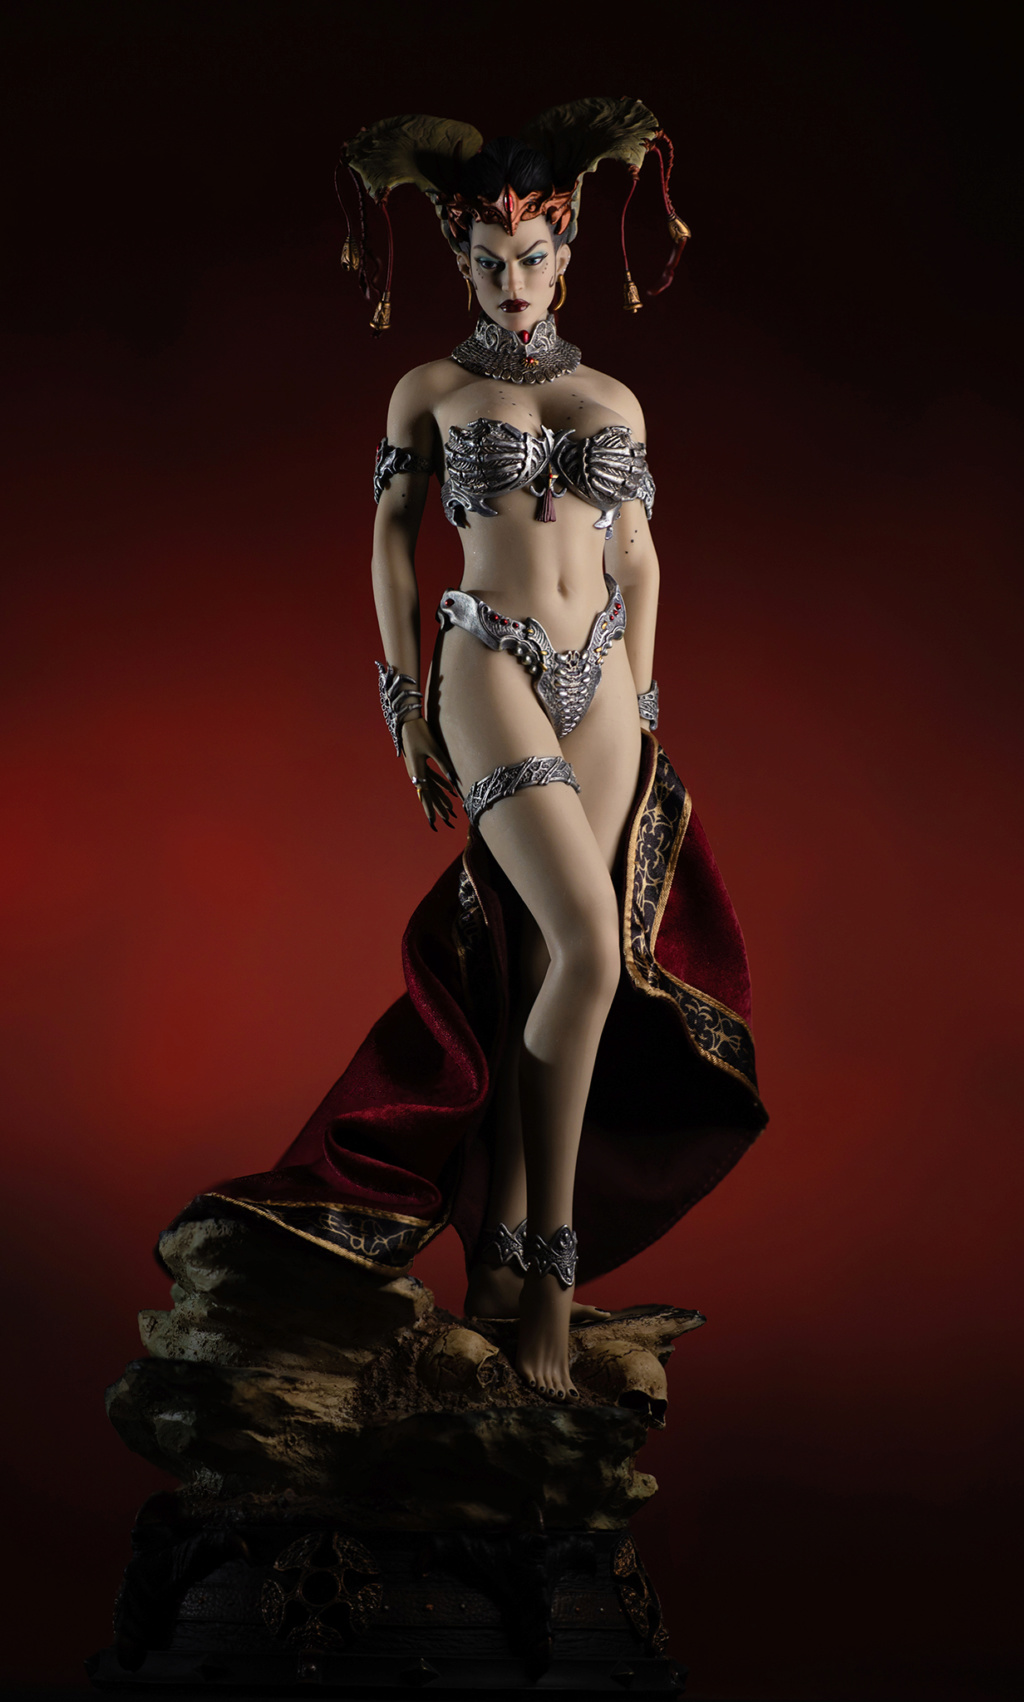 tbleague - NEW PRODUCT: Tbleague x SIDESHOW New: 1/6 Court of the Dead: Gethsemoni The Dead Queen action figure (PL2019-147) - Page 2 Gethse11